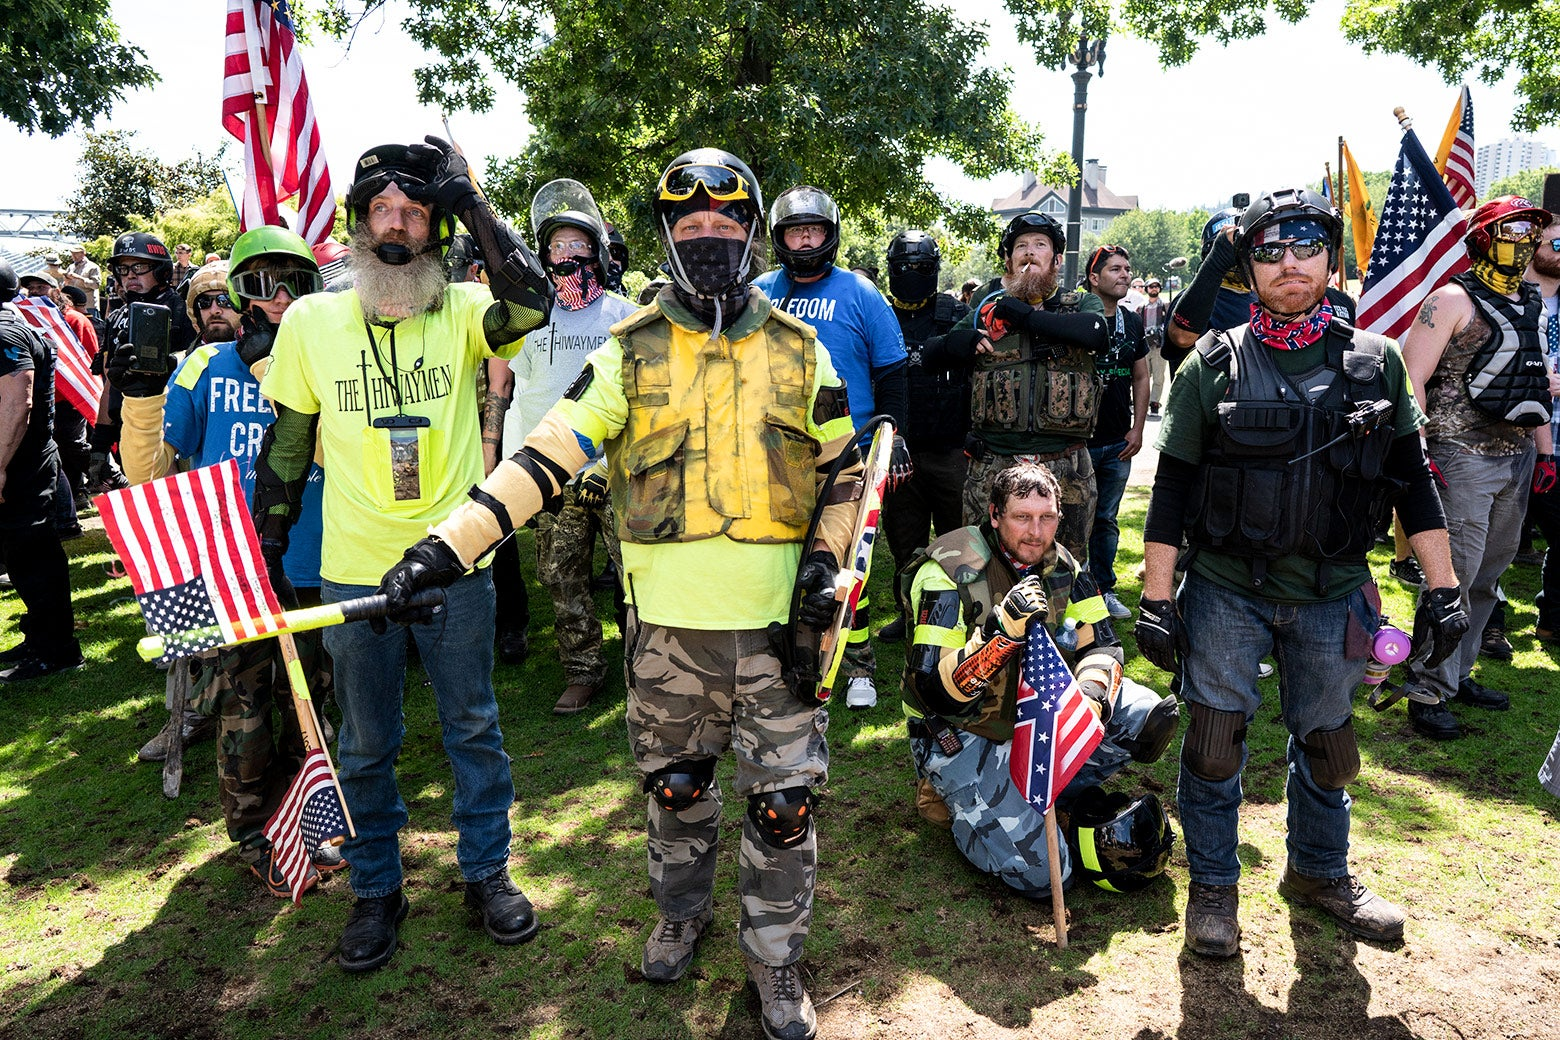 The Proud Boys, a far right group supportive of President Donald Trump, organized the Patriot Prayer Rally for far right protesters.